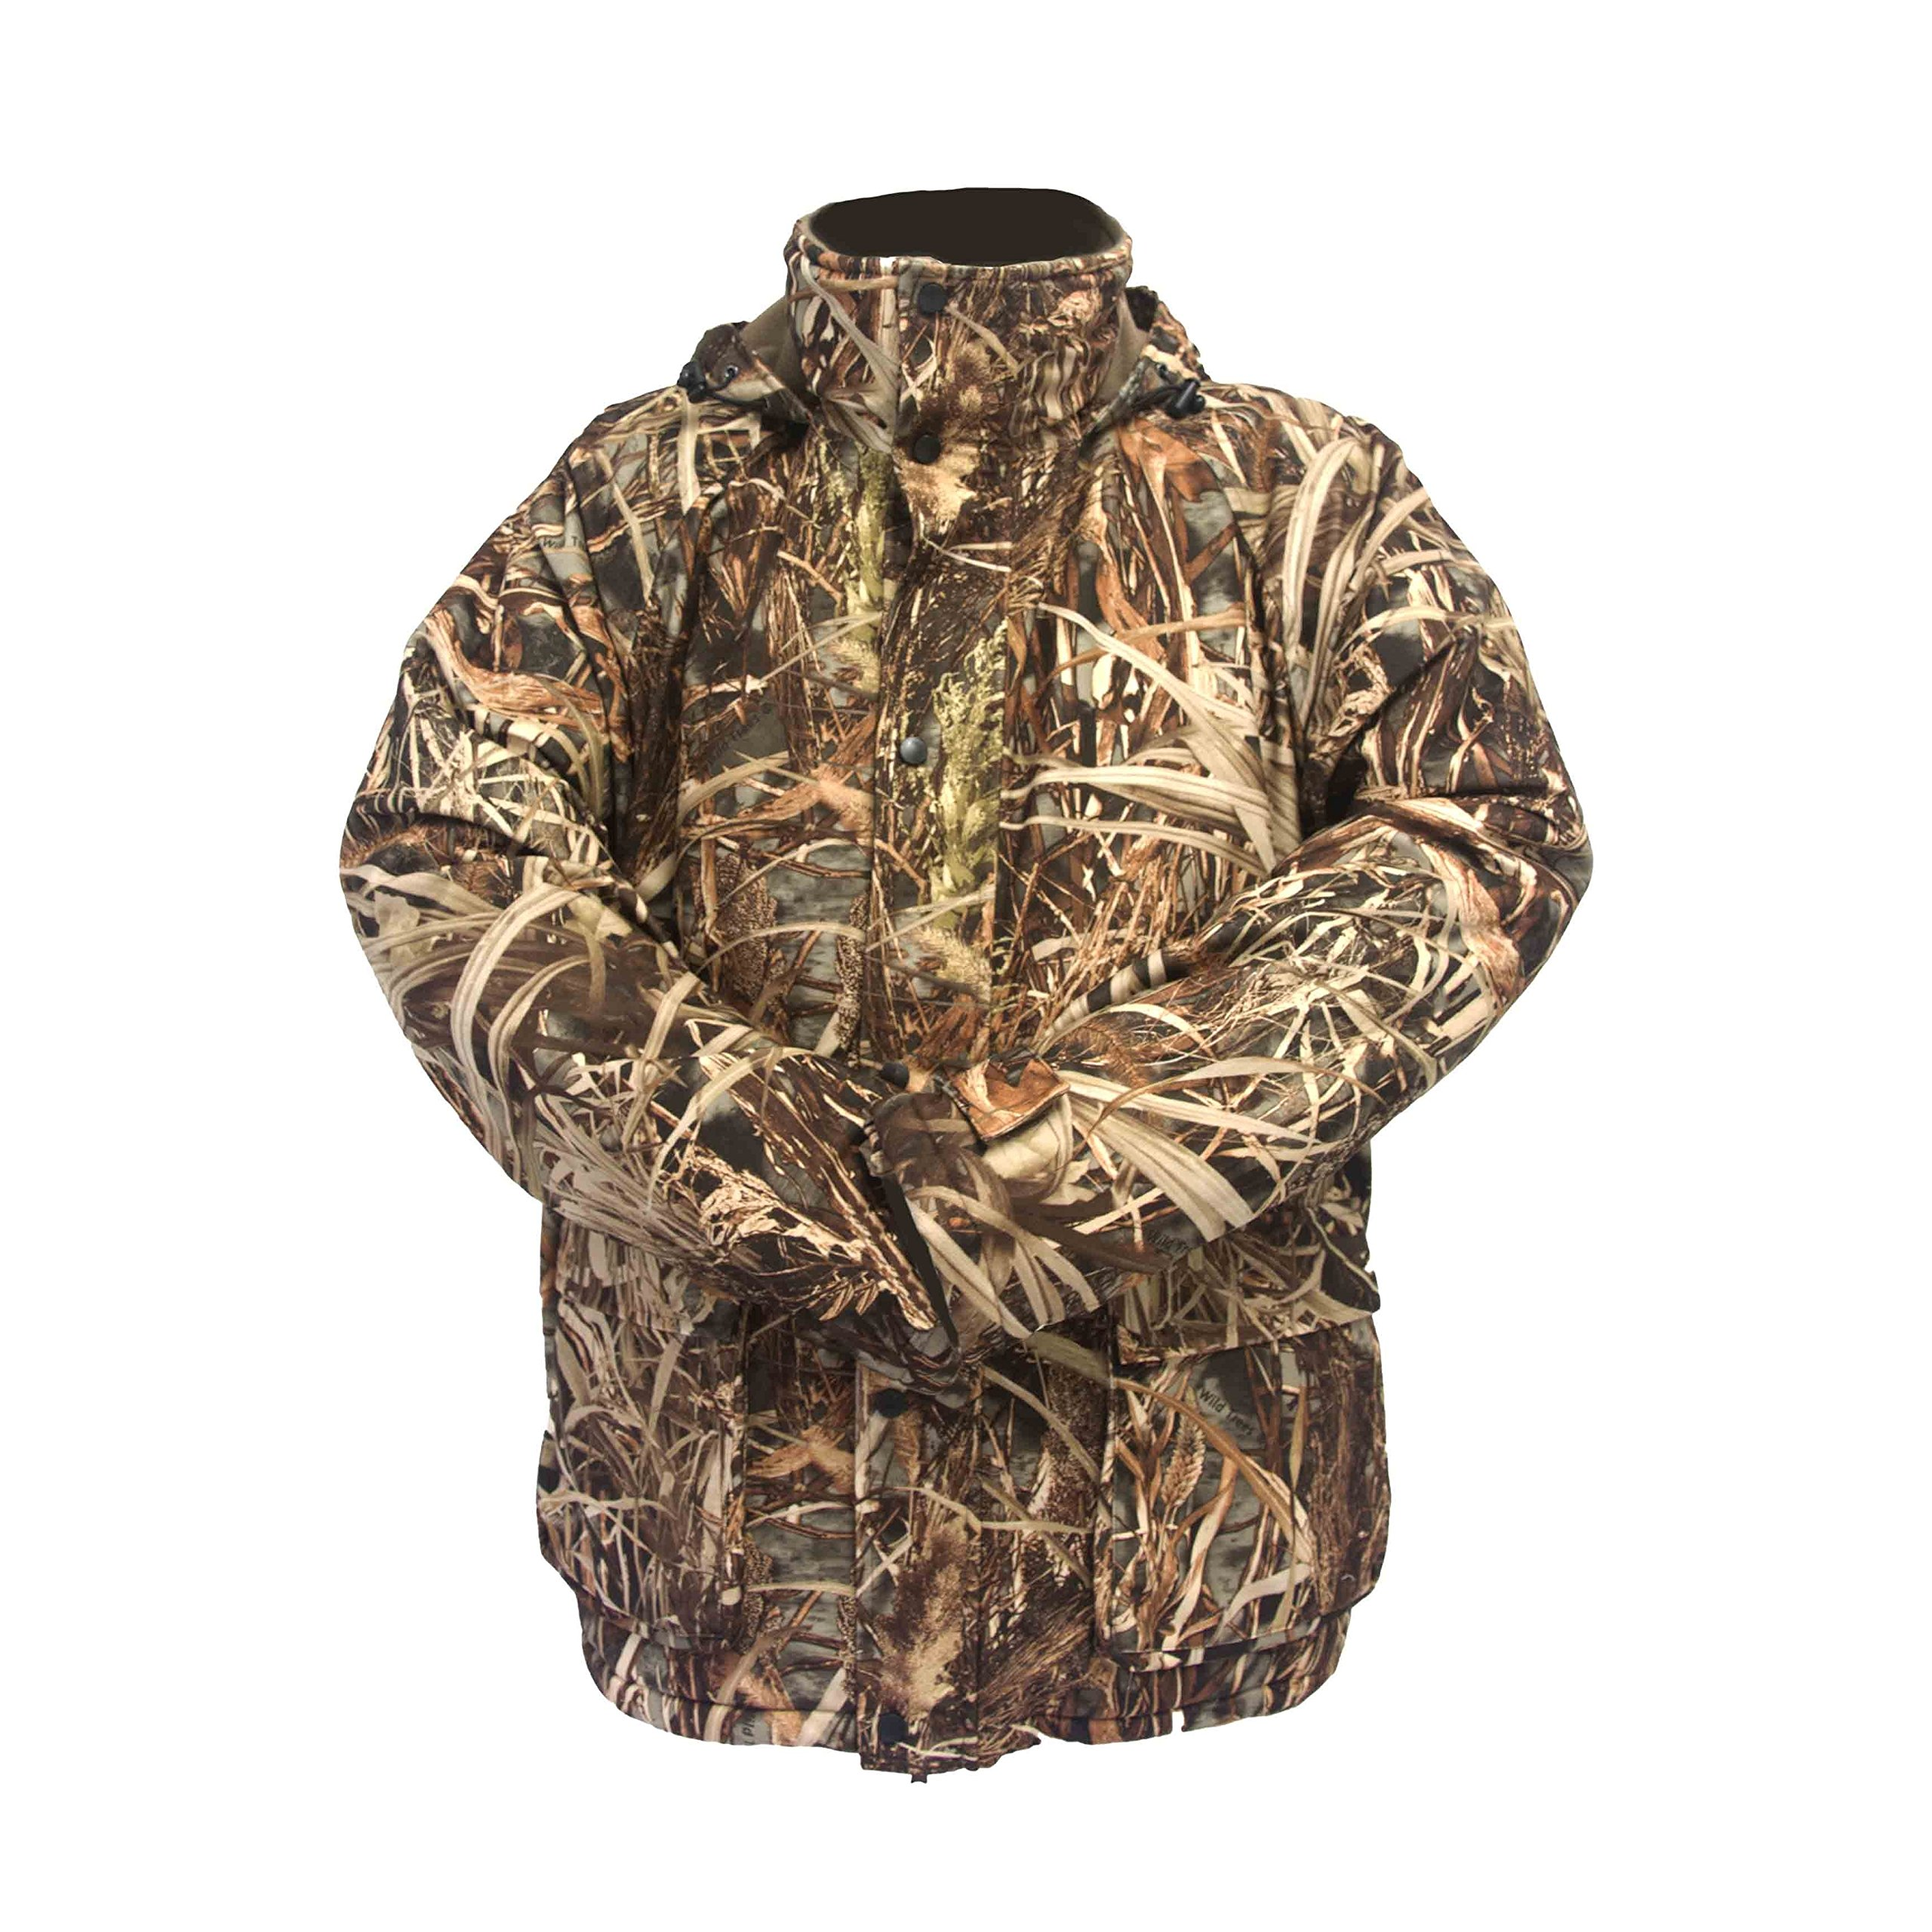 Wildfowler Outfitter Men's Wild Grass Waterproof Insulated Parka by Wildfowler